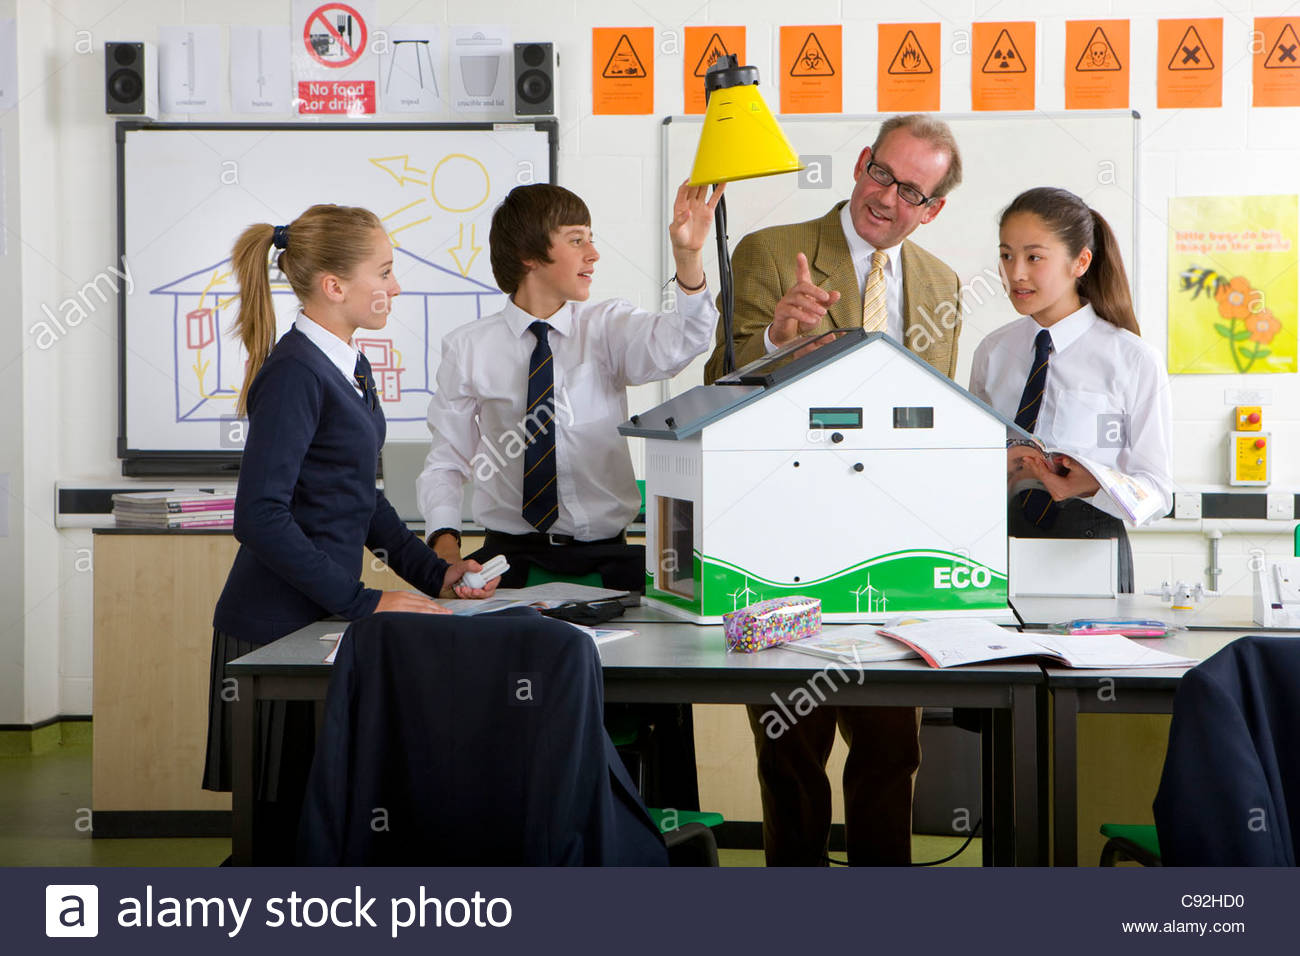 Teacher and students in school uniforms adjusting lamp over solar panels on house model in science class - Stock Image